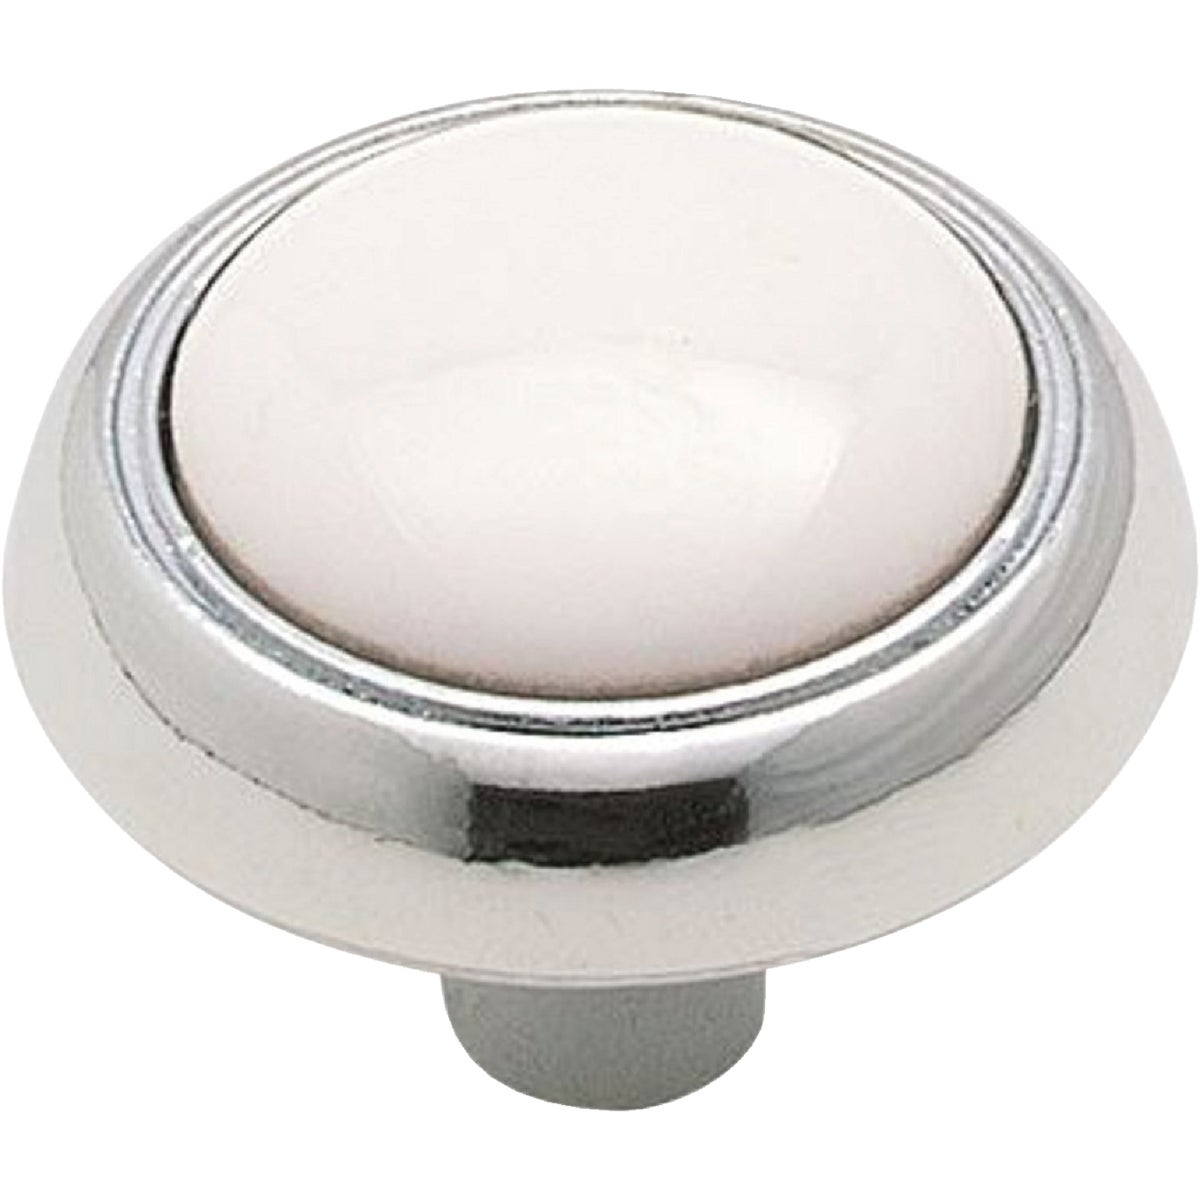 "1-1/4"" WCH KNOB W/INSERT - 262WCH by Amerock Corporation"